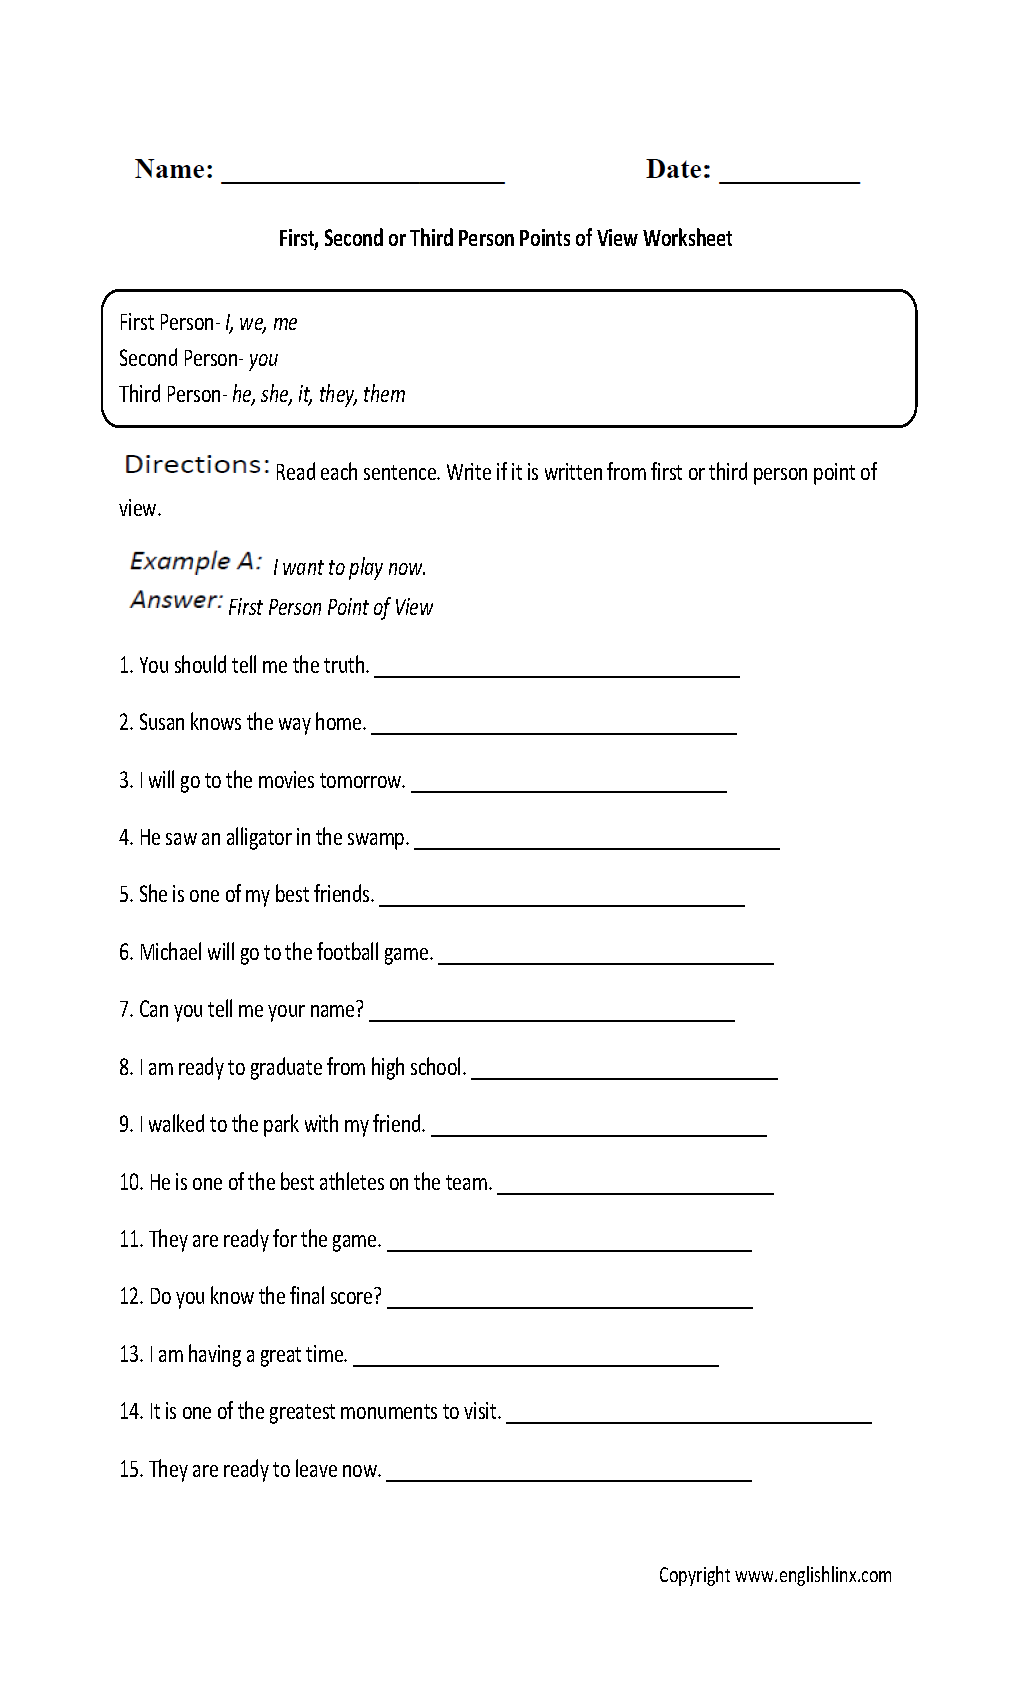 first second and third person point of view worksheet first second and third person point of view worksheet